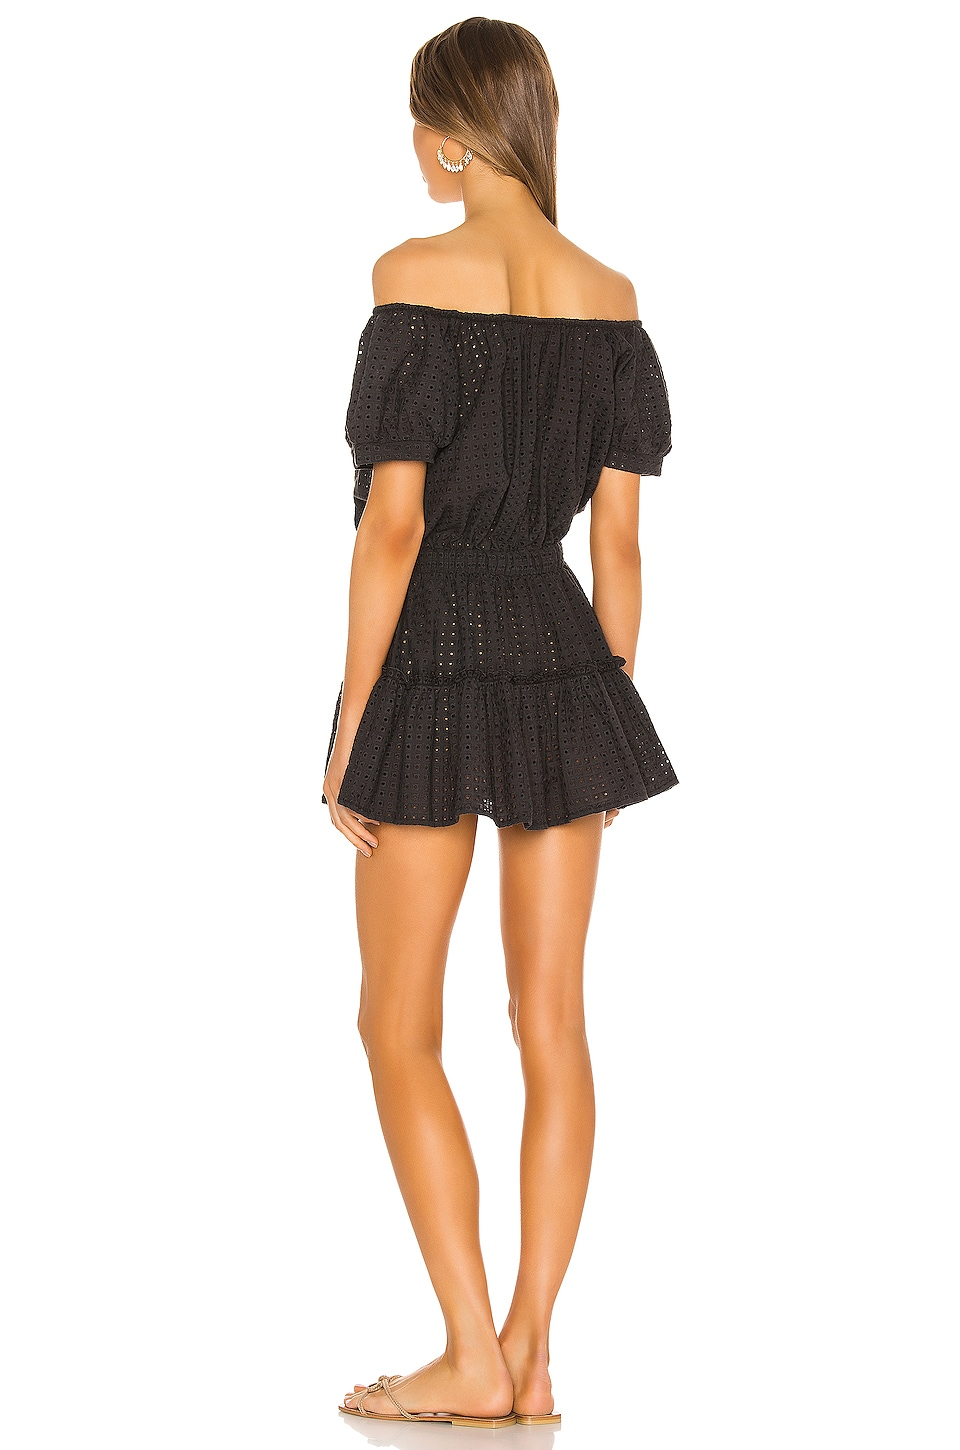 x REVOLVE Harper Nellie Dress, view 3, click to view large image.